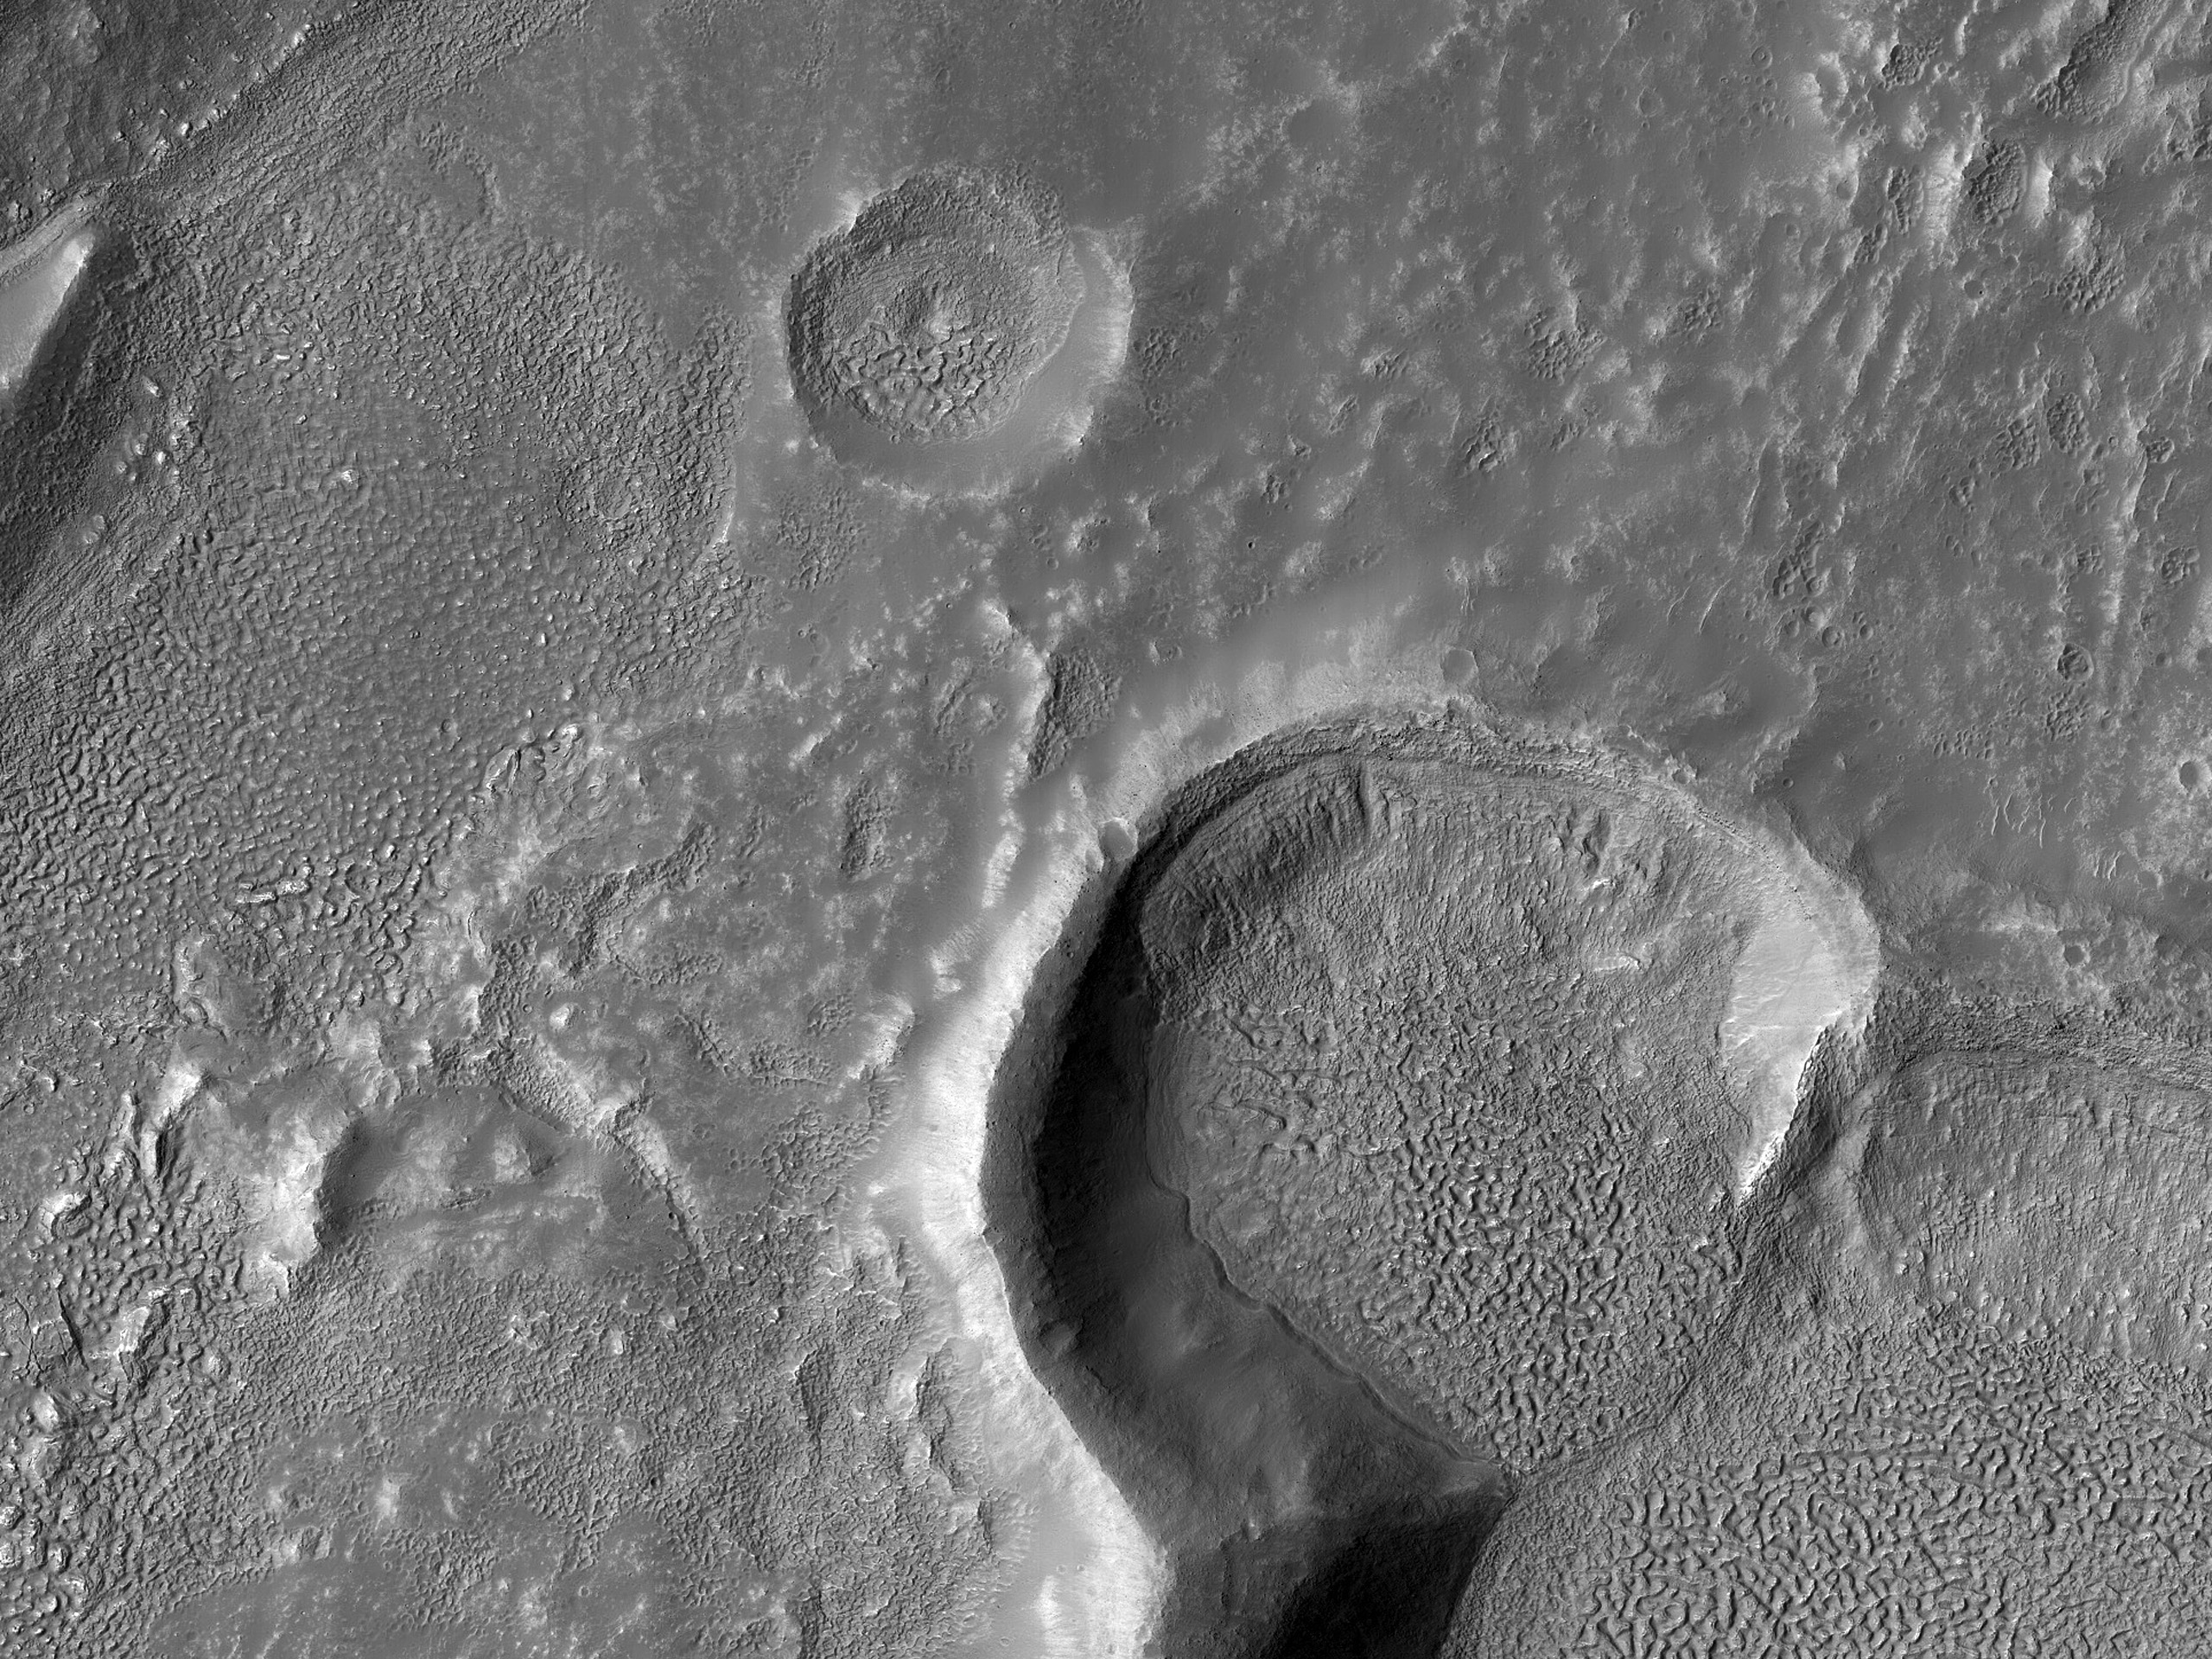 Mantle Layers in Icaria Fossae